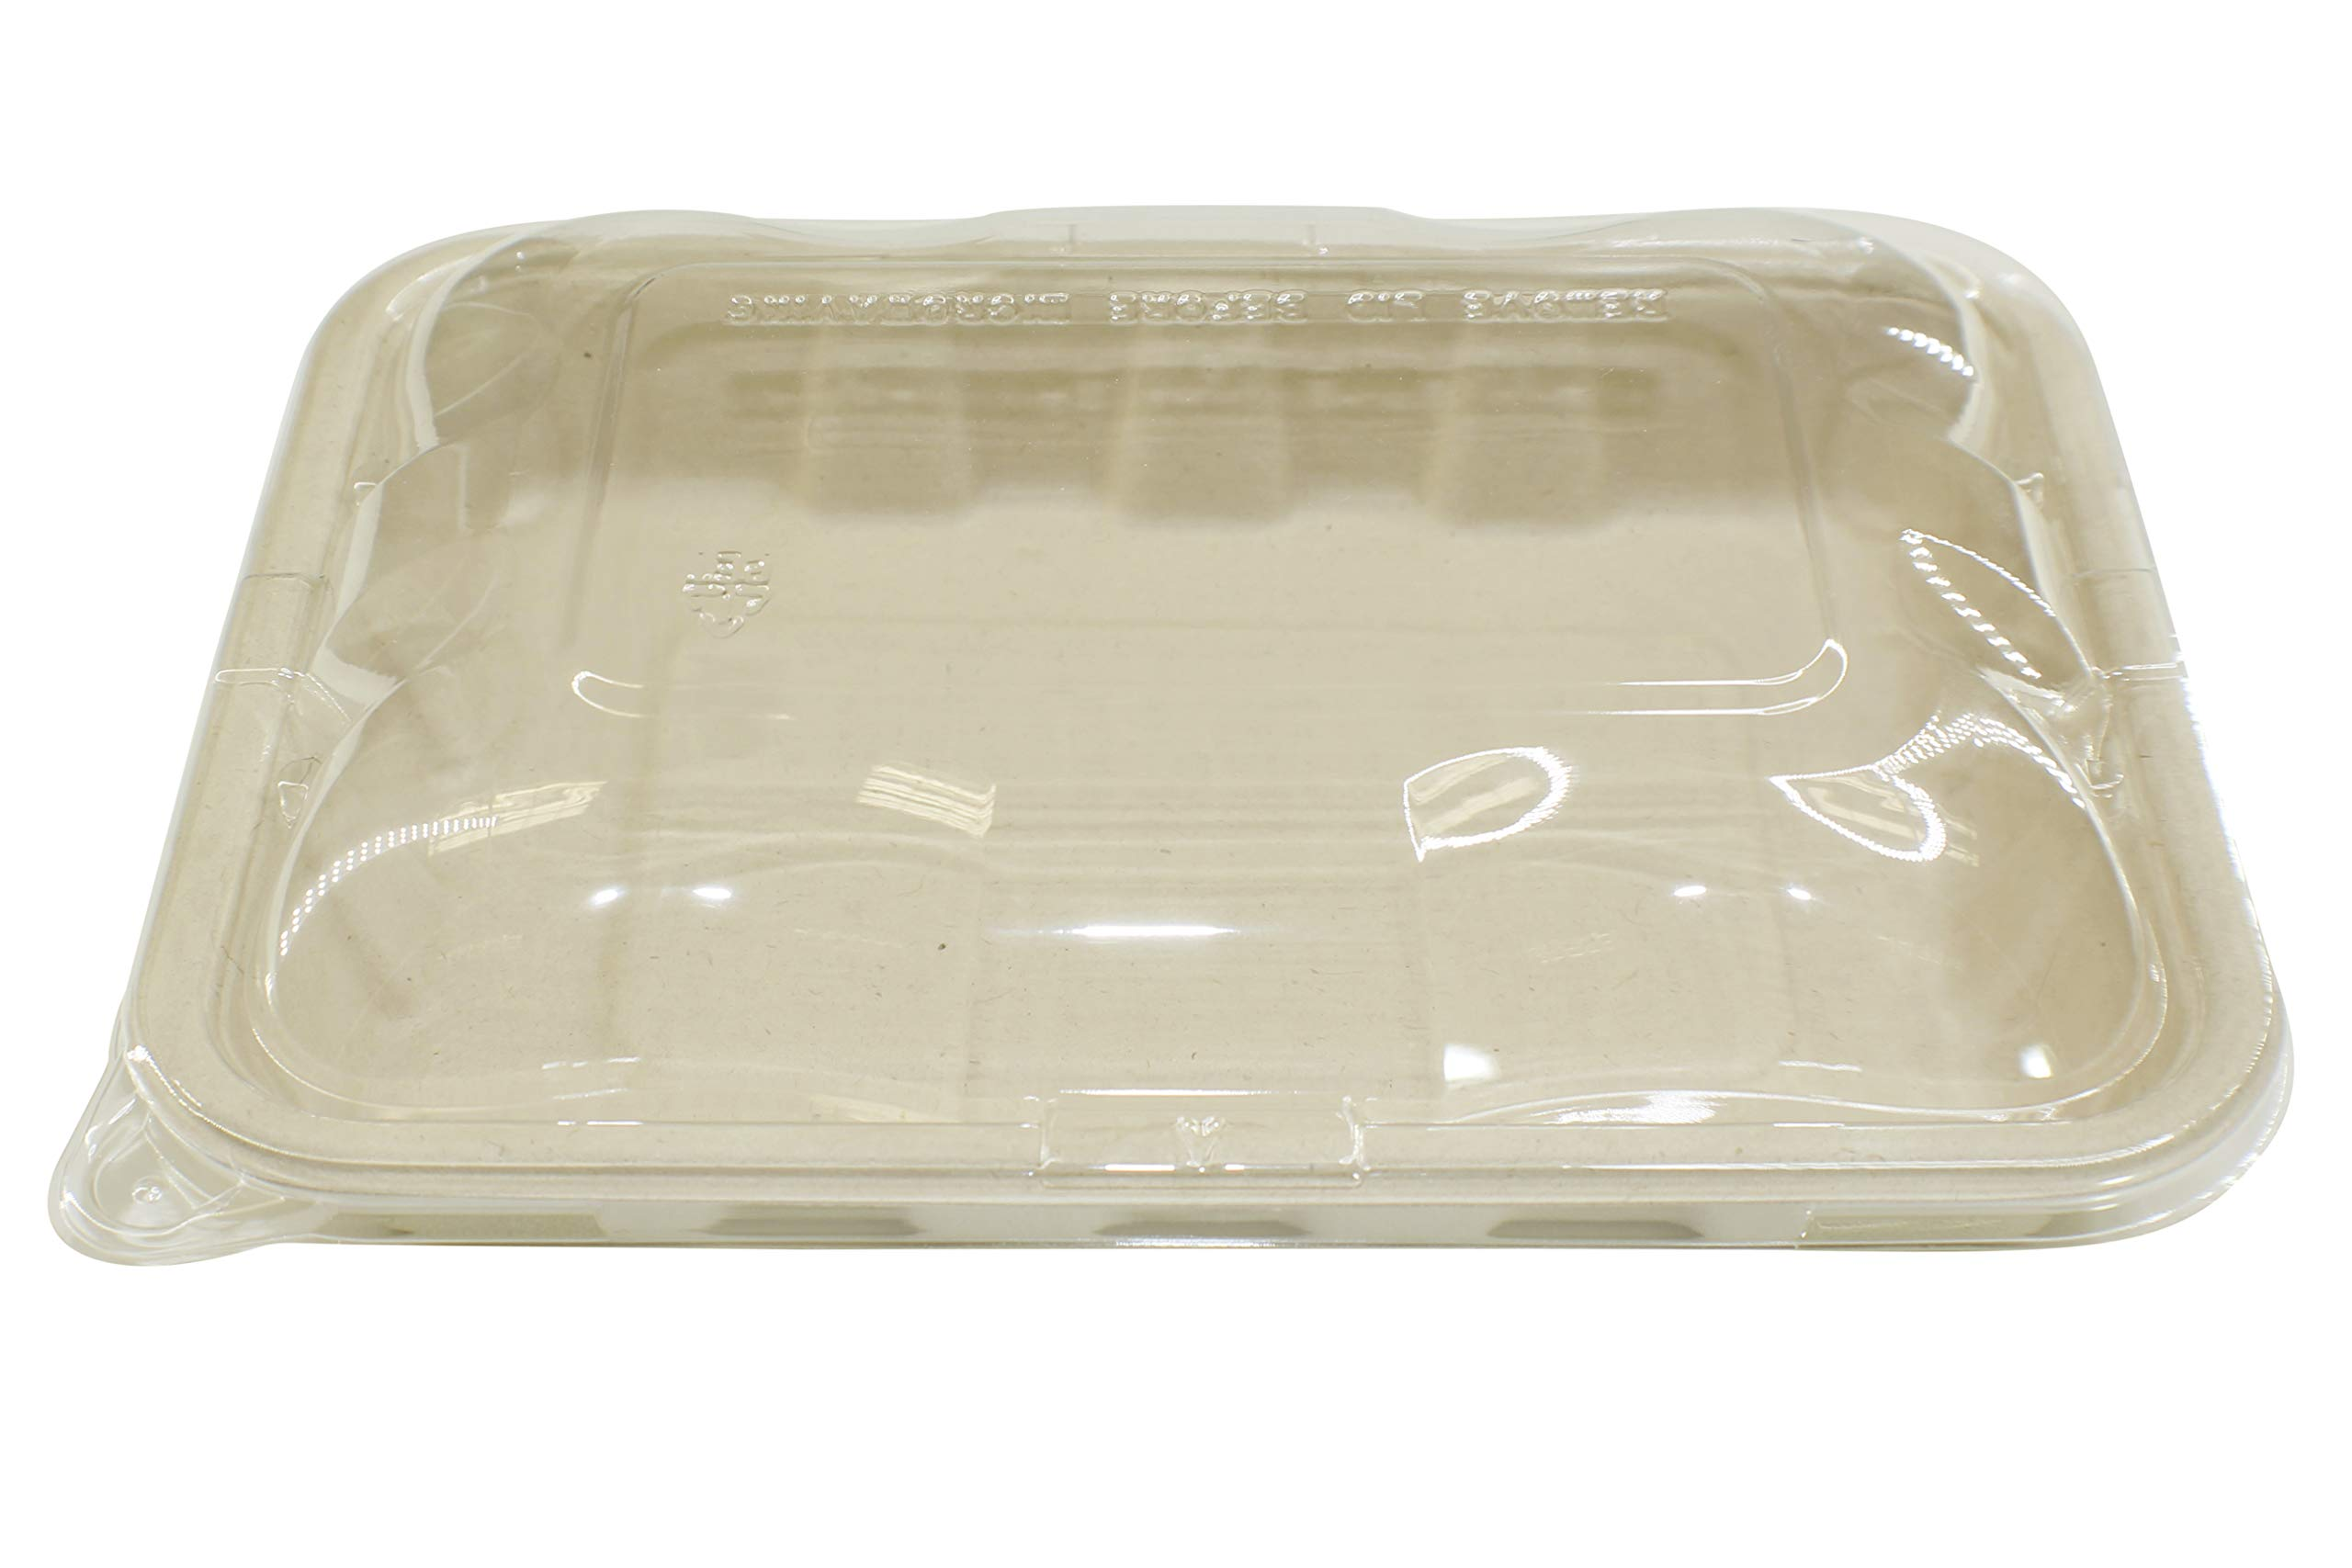 [400 Sets] 22oz Compostable Eco Friendly Container Trays with Lids - Containers Tree-Free Bagasse Fibers Sugarcane Meal Prep Dinnerware Plates Catering Bento Boxes Takeout 100% by Products